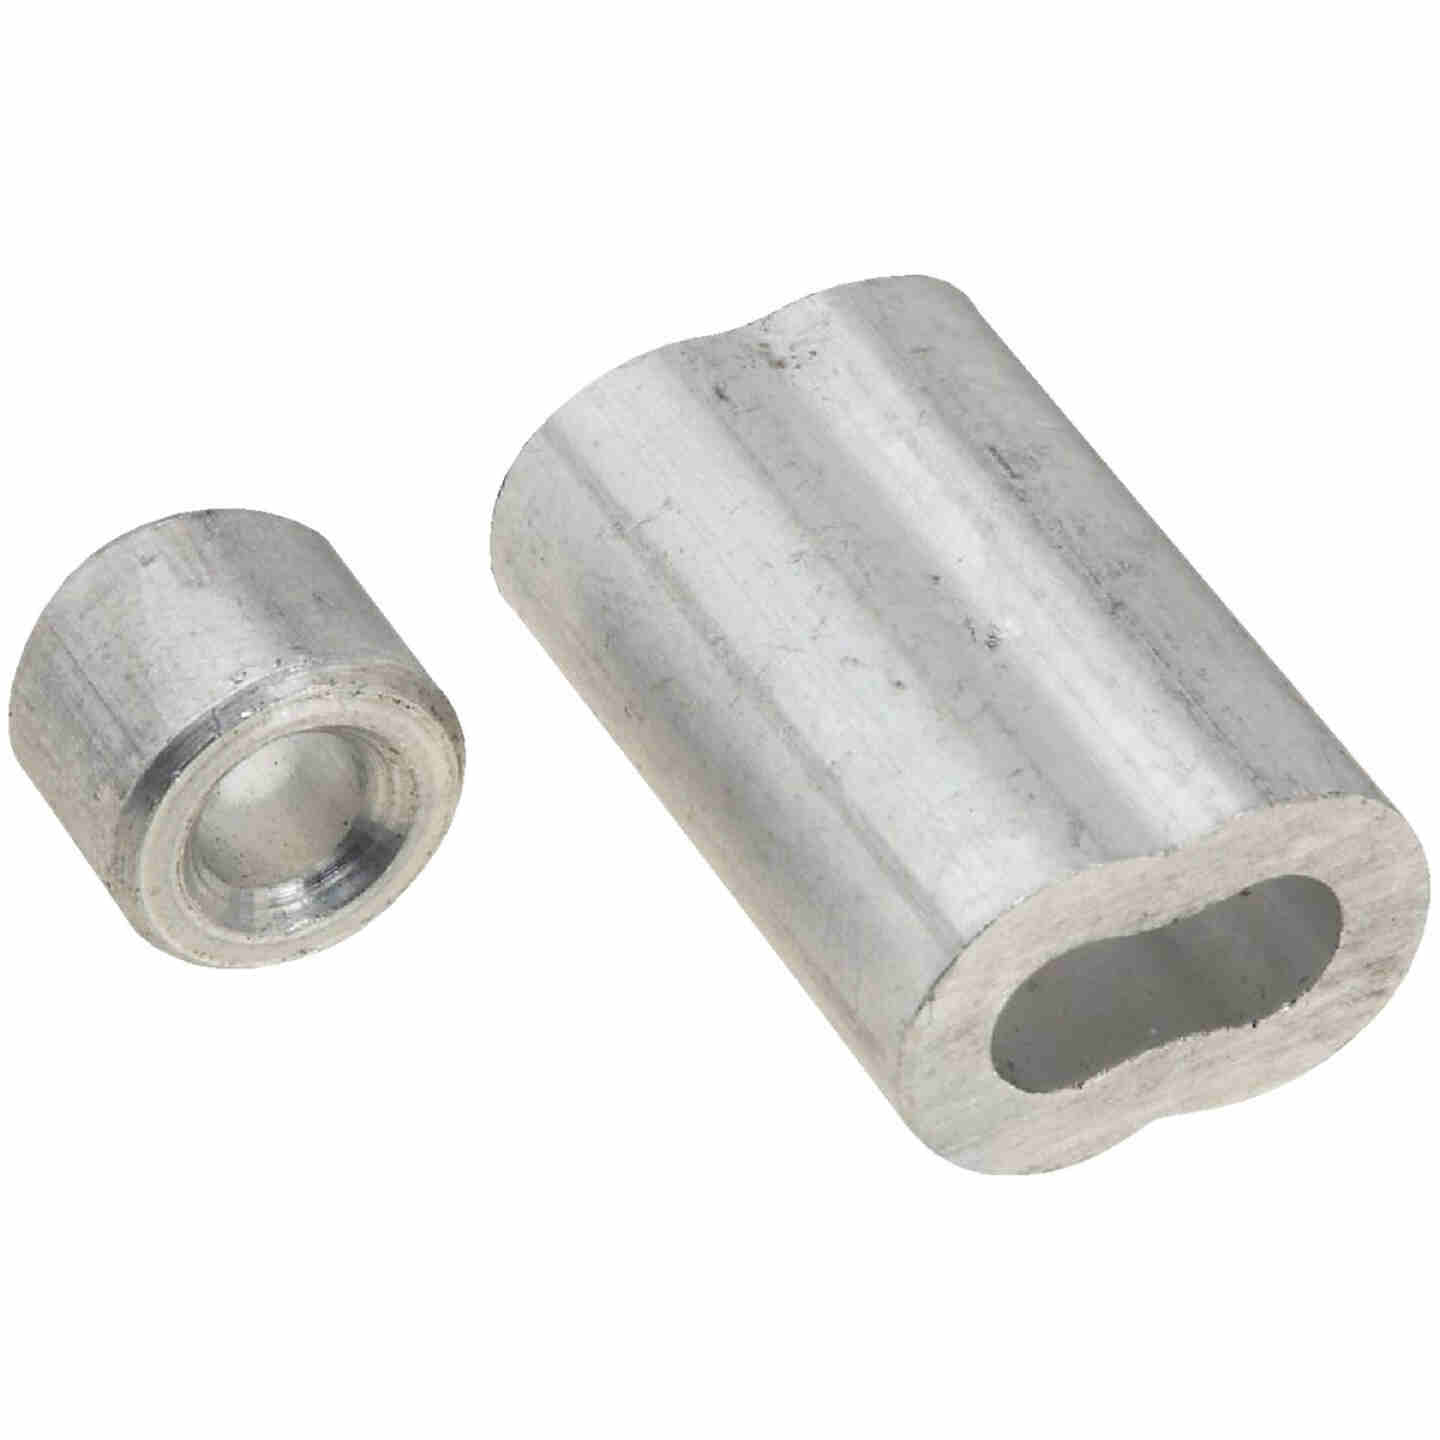 "Prime-Line Cable Ferrules and Stops, 3/16"", Aluminum Image 1"